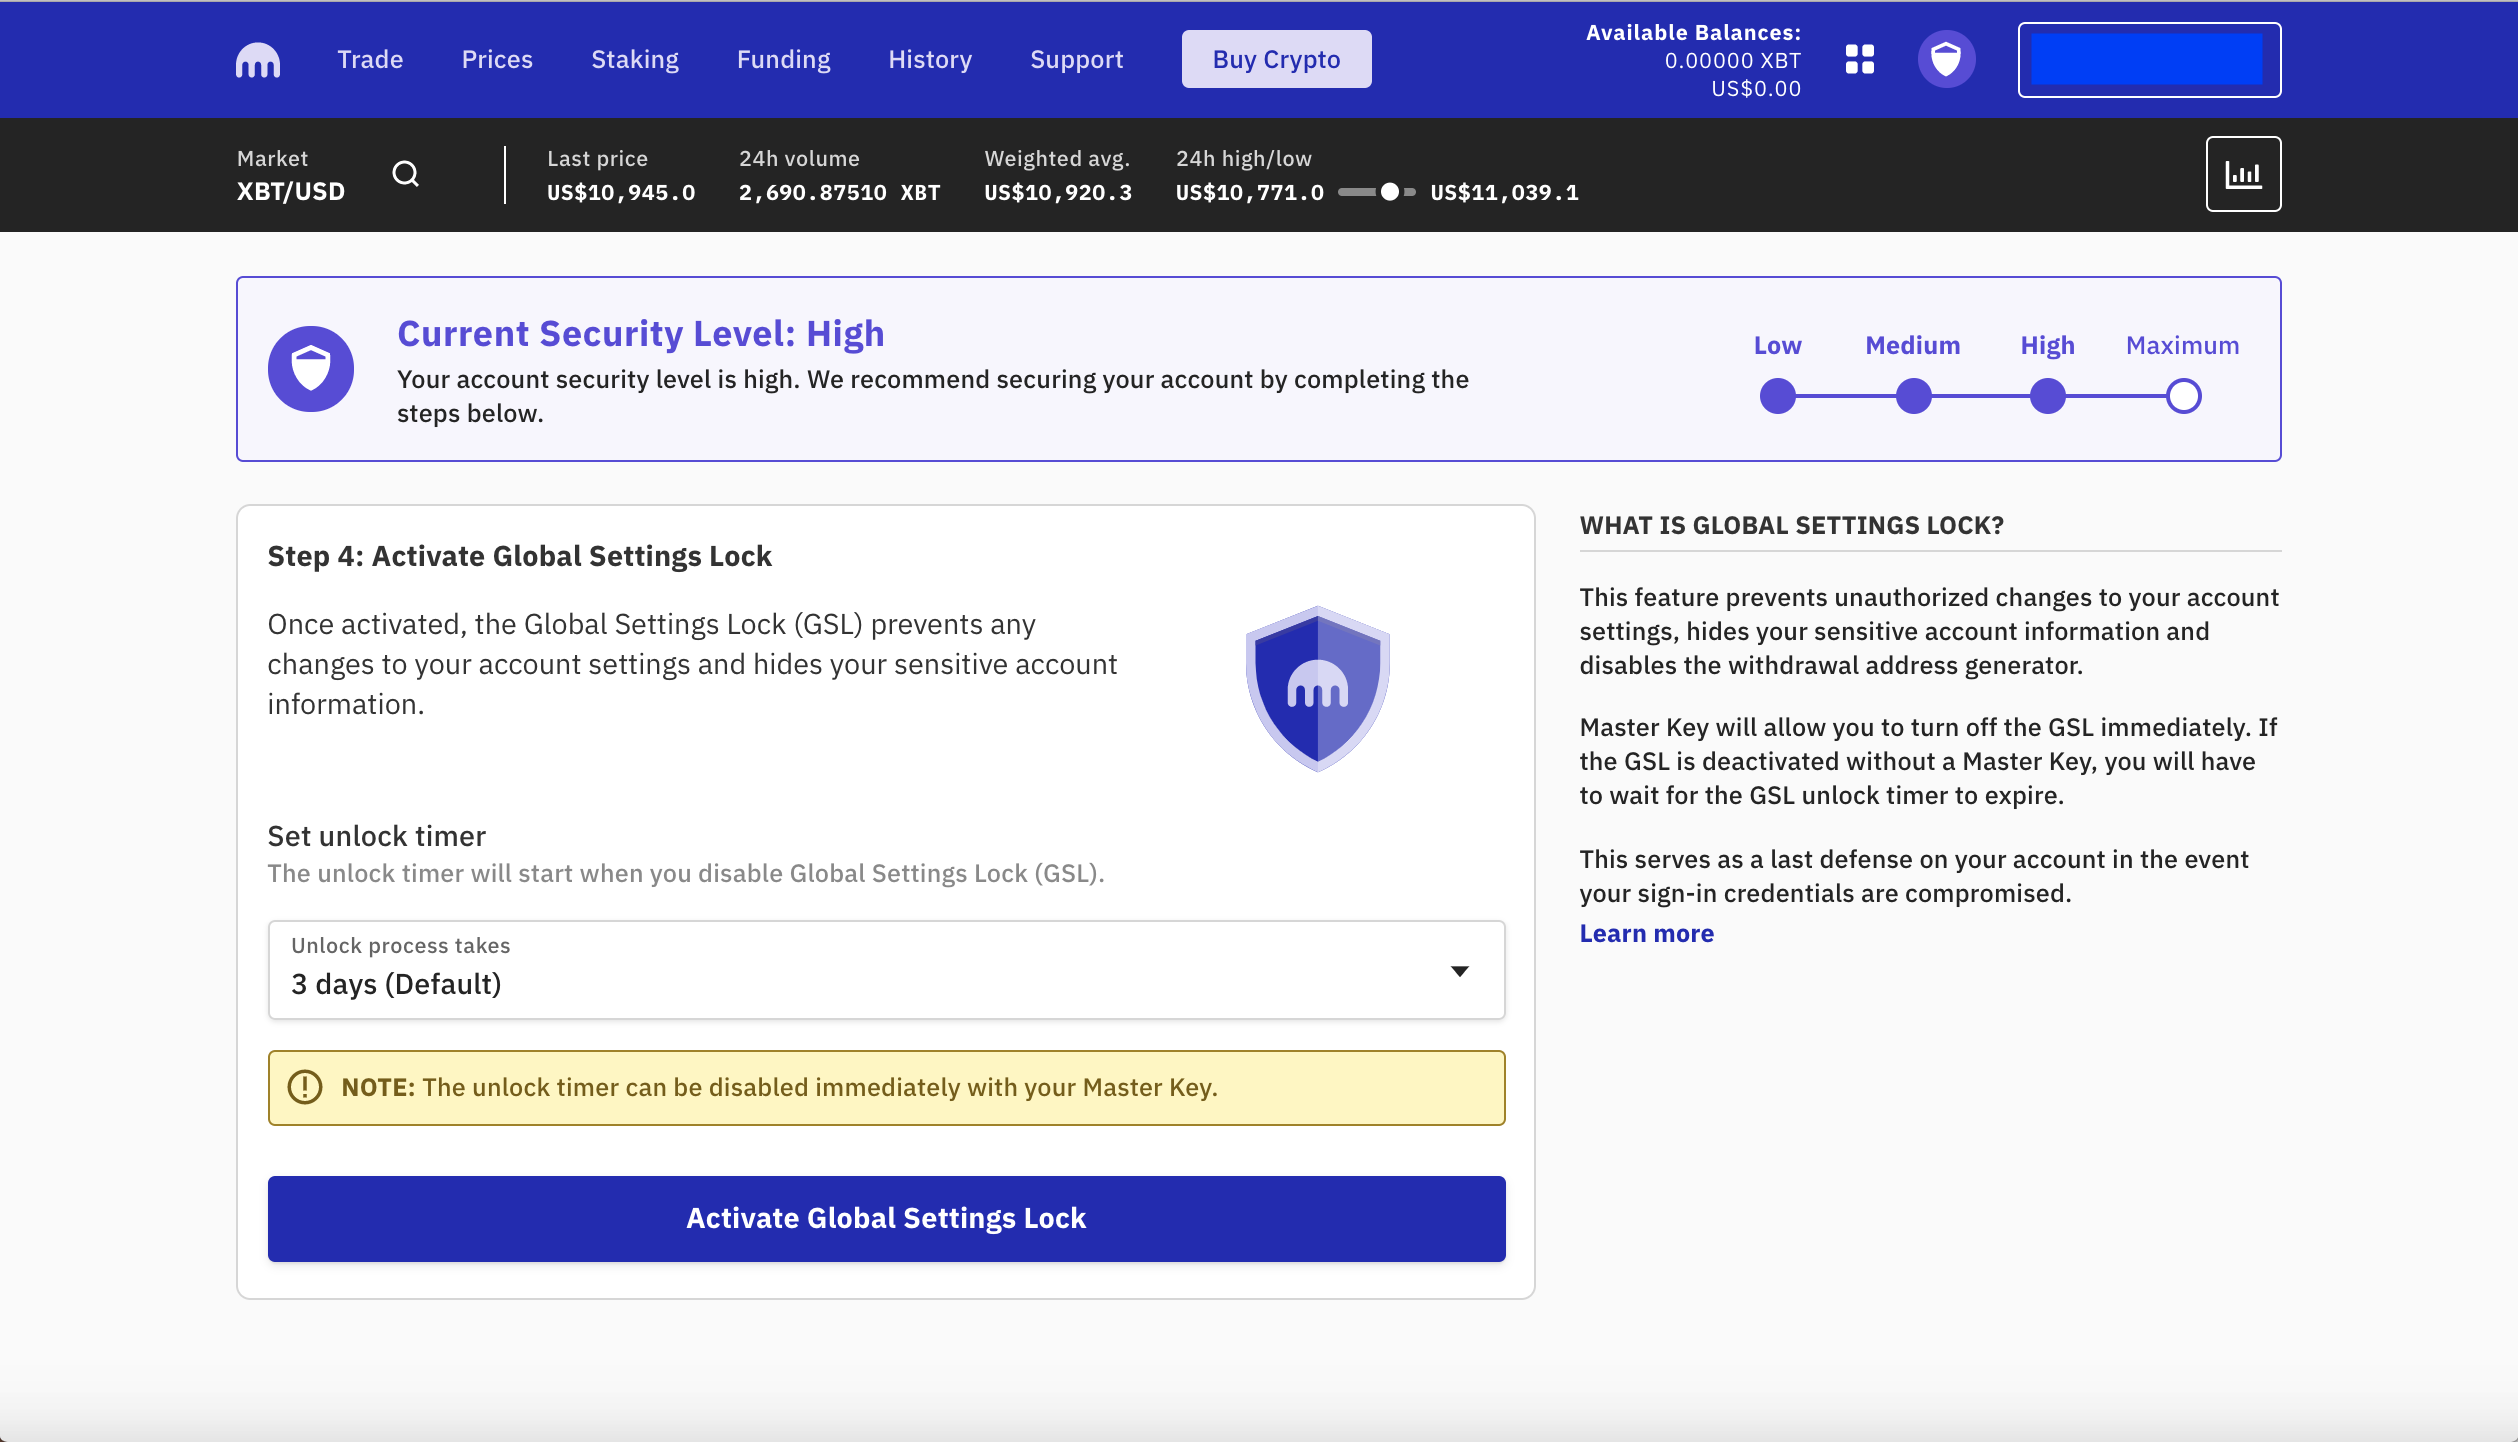 Security_ShieldHigh_10012020.png